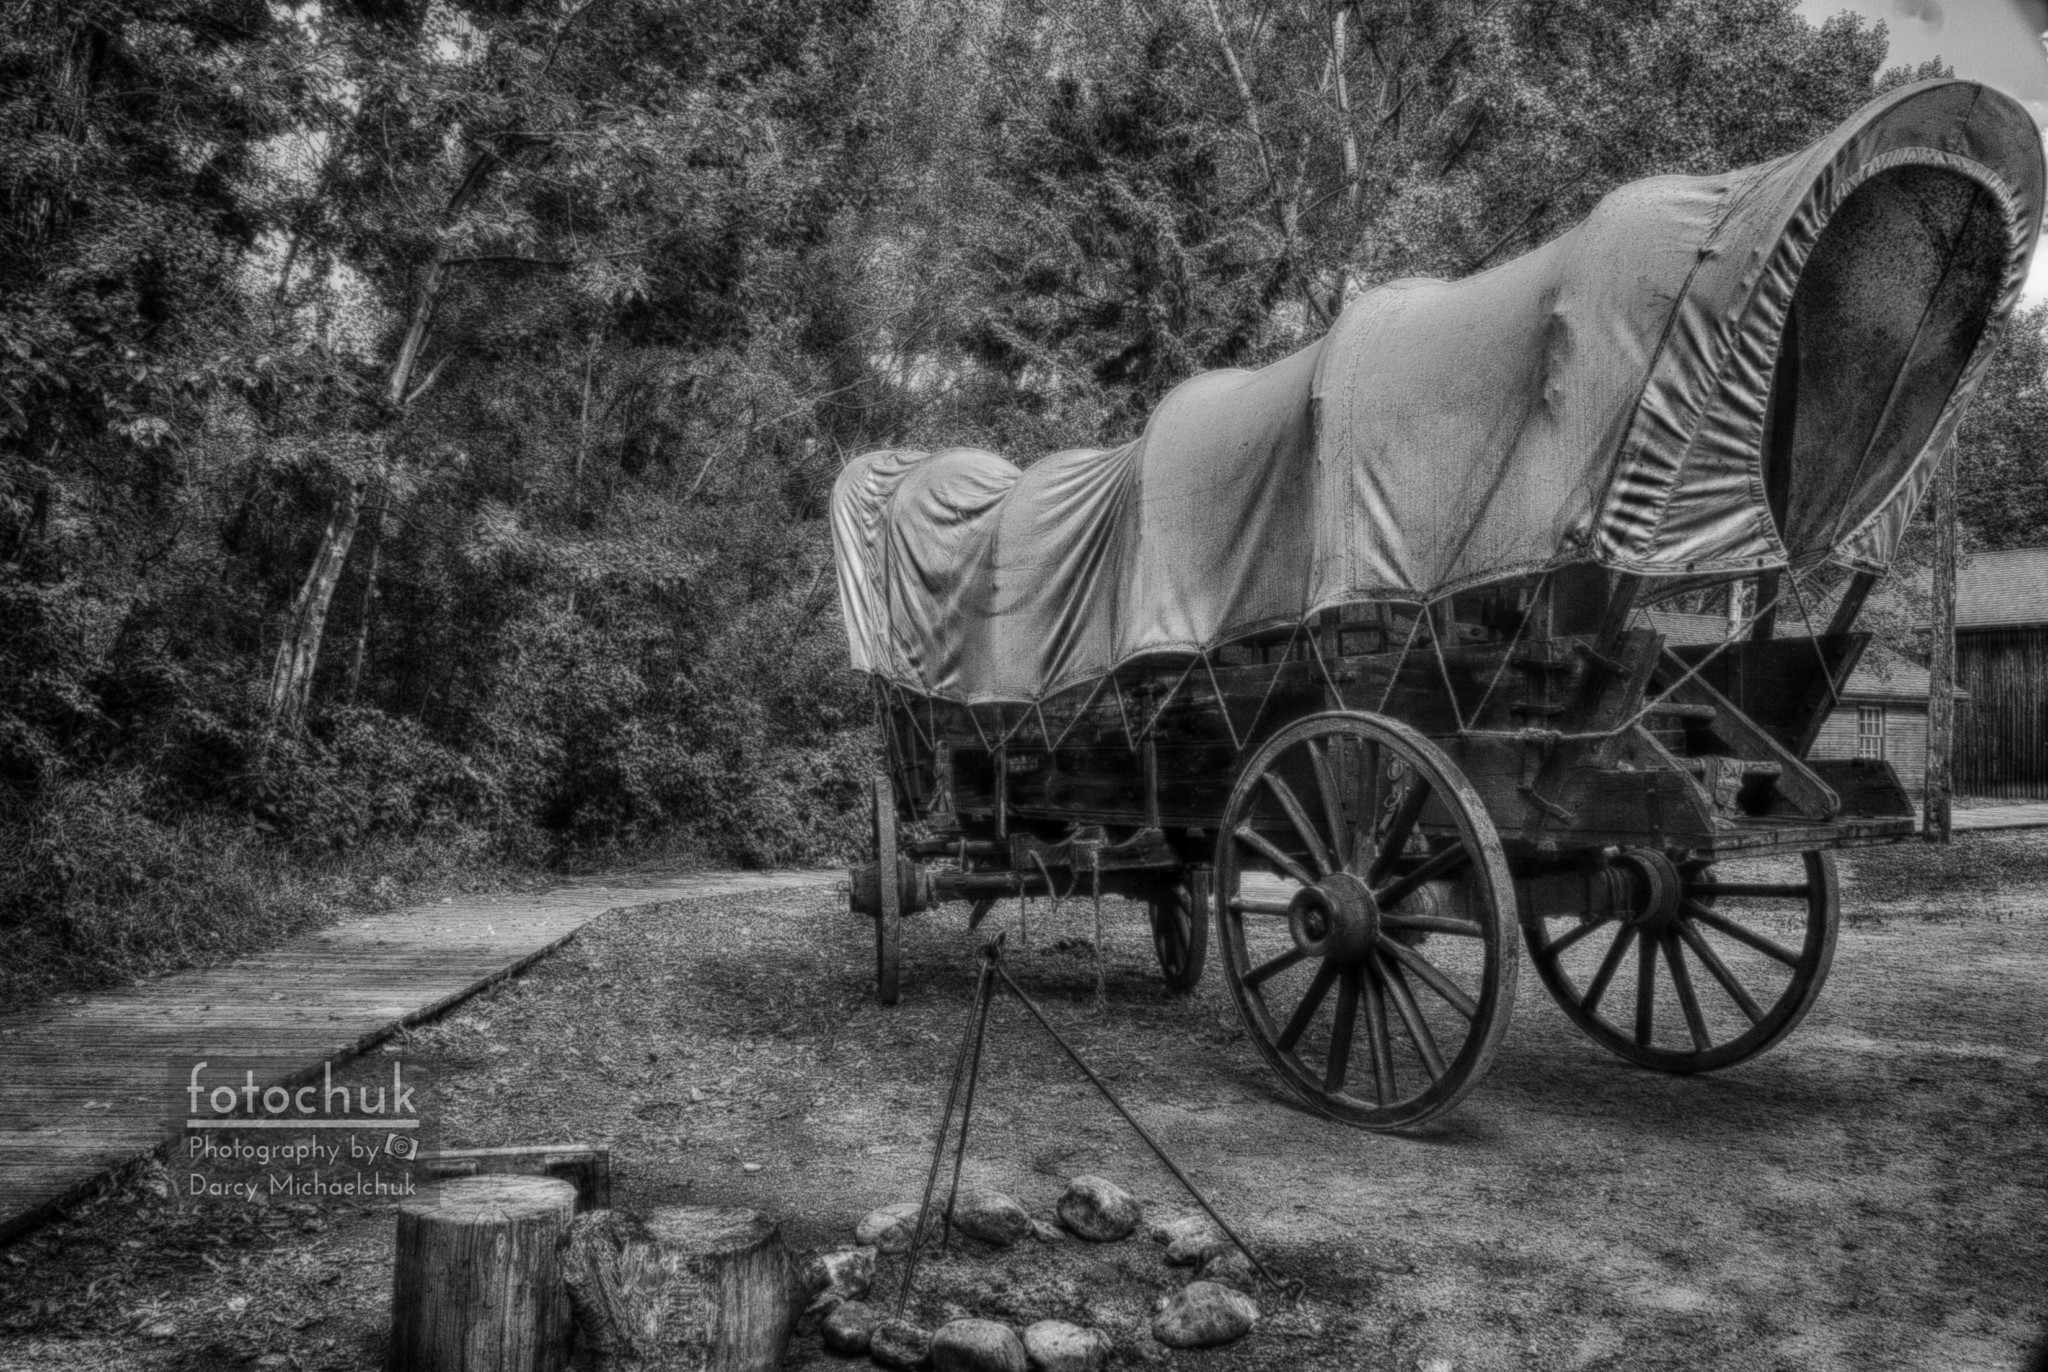 Old Scene – Camp  by Darcy Michaelchuk